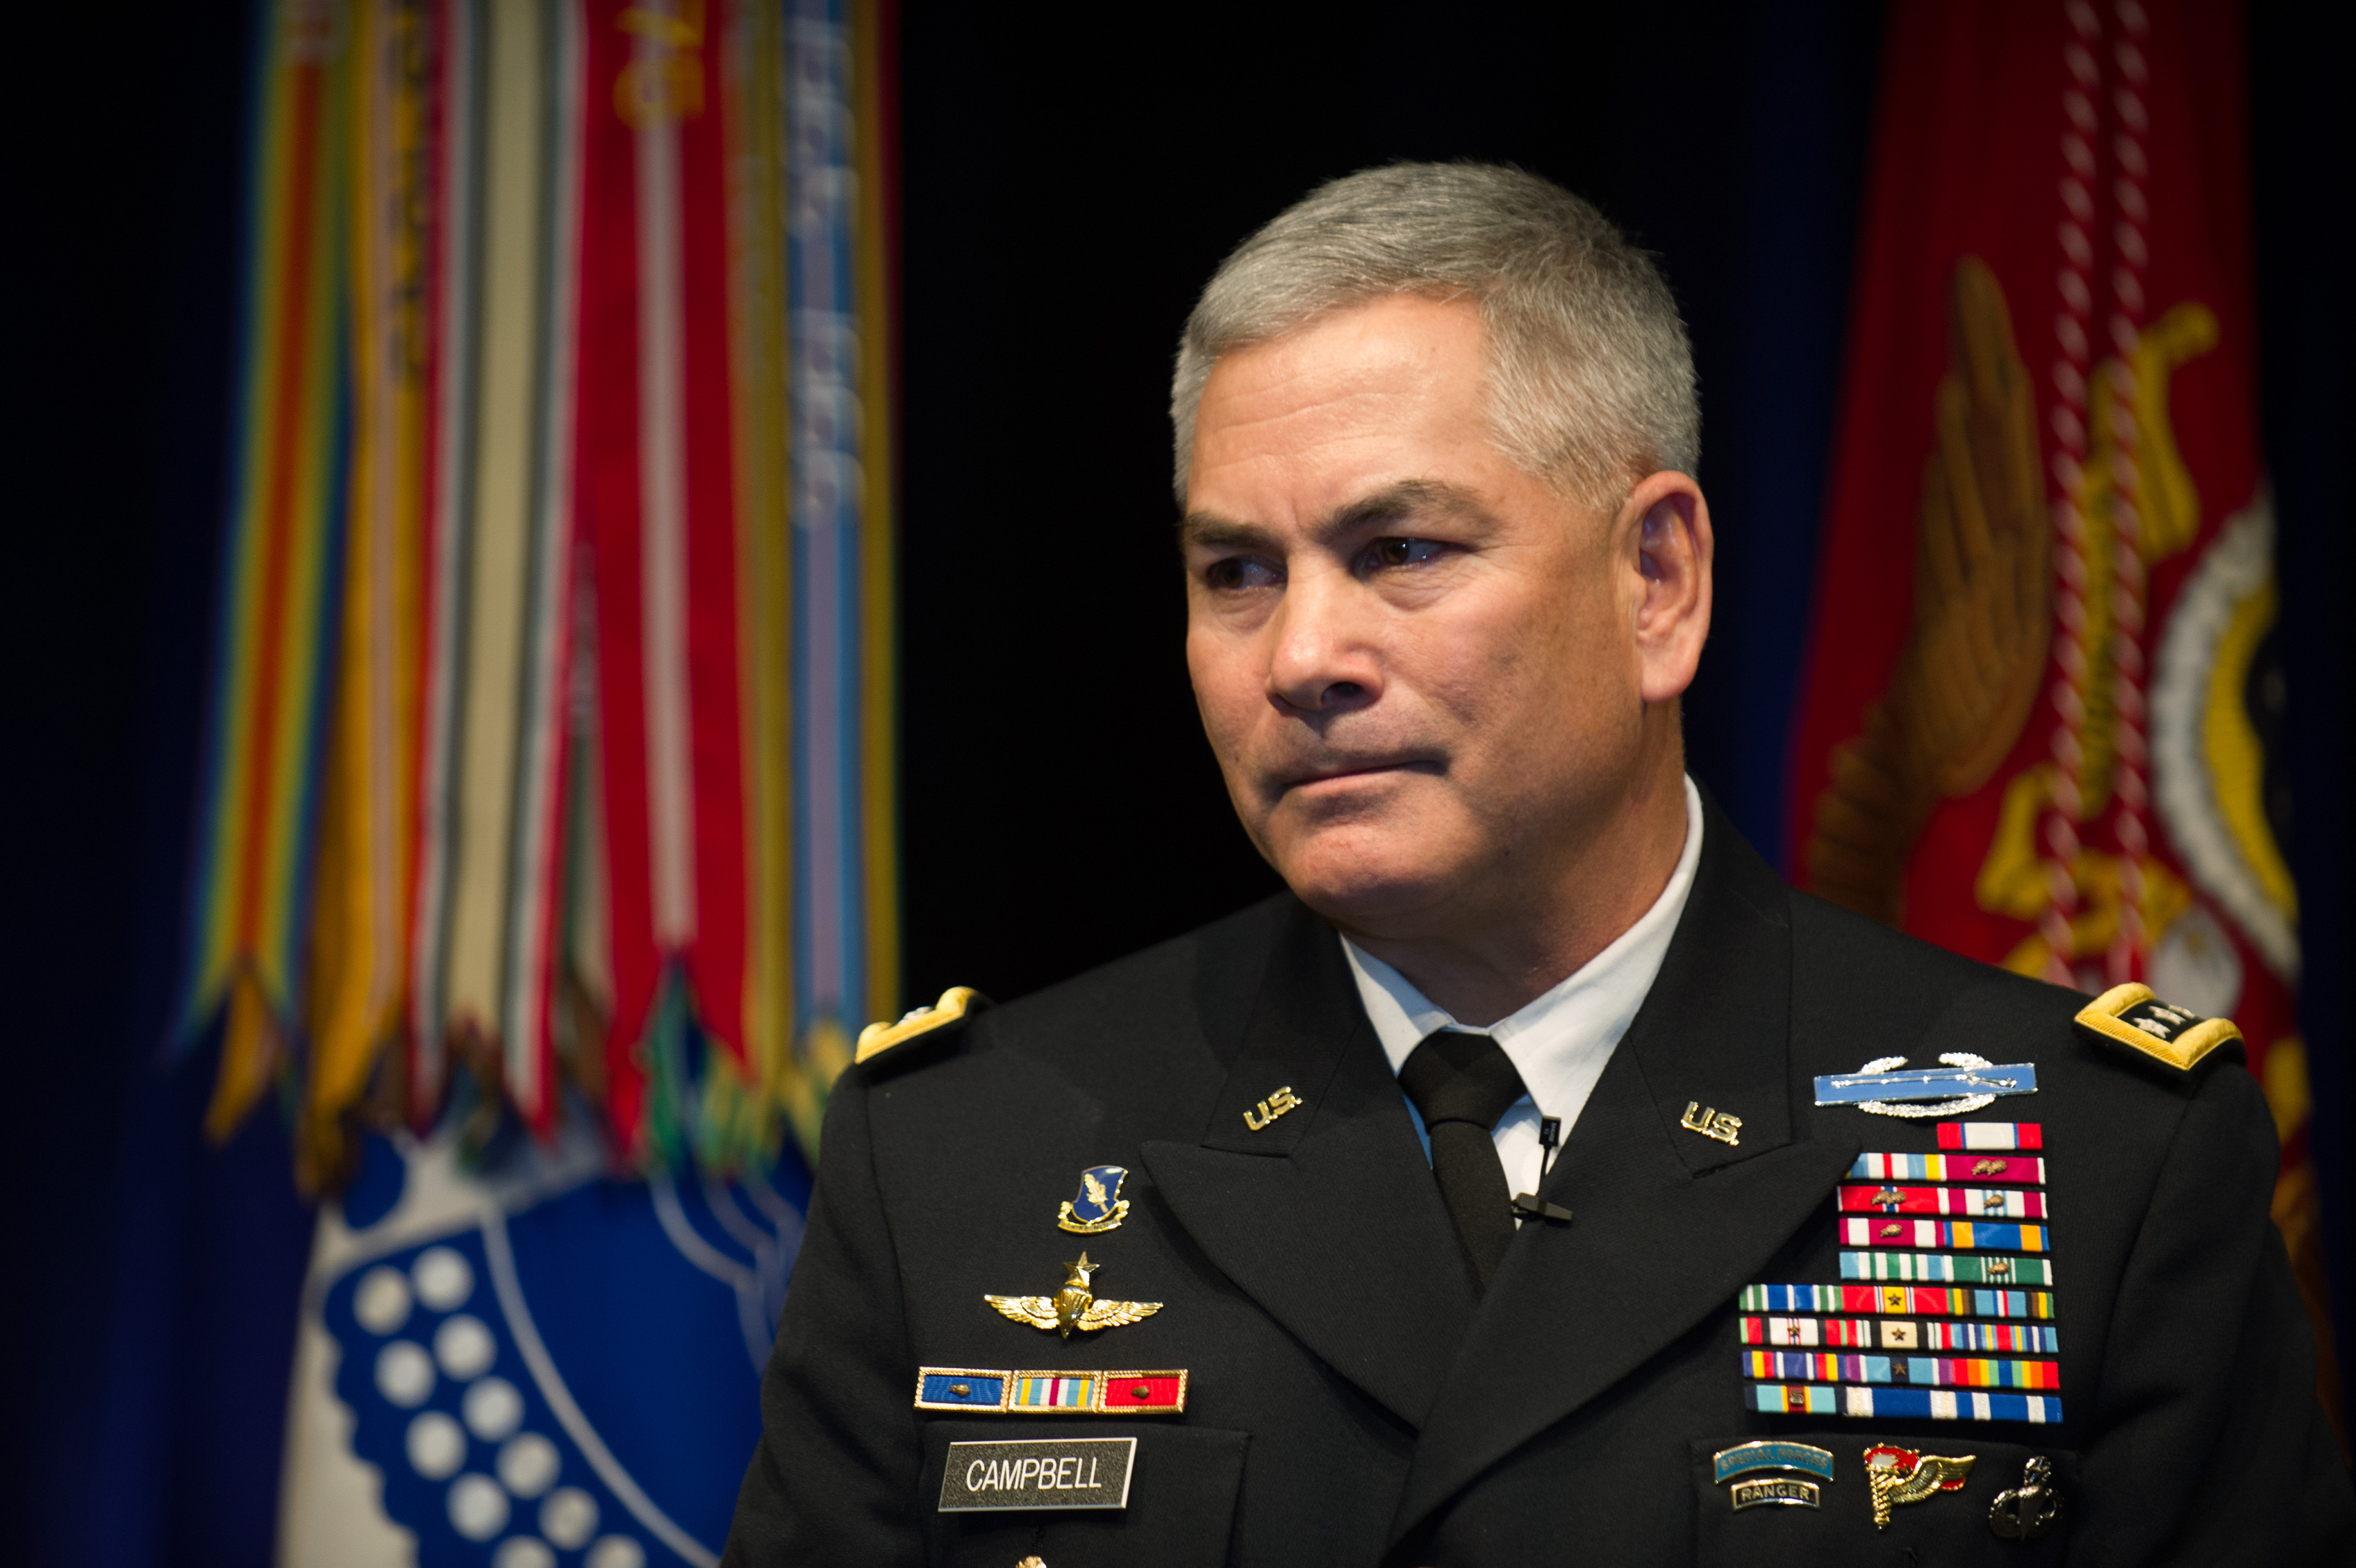 U.S. Army Gen. John Campbell assumes duties as the 34th Army Vice Chief of Staff during a ceremony at the Pentagon Auditorium Mar. 8, 2013. US Army Photo